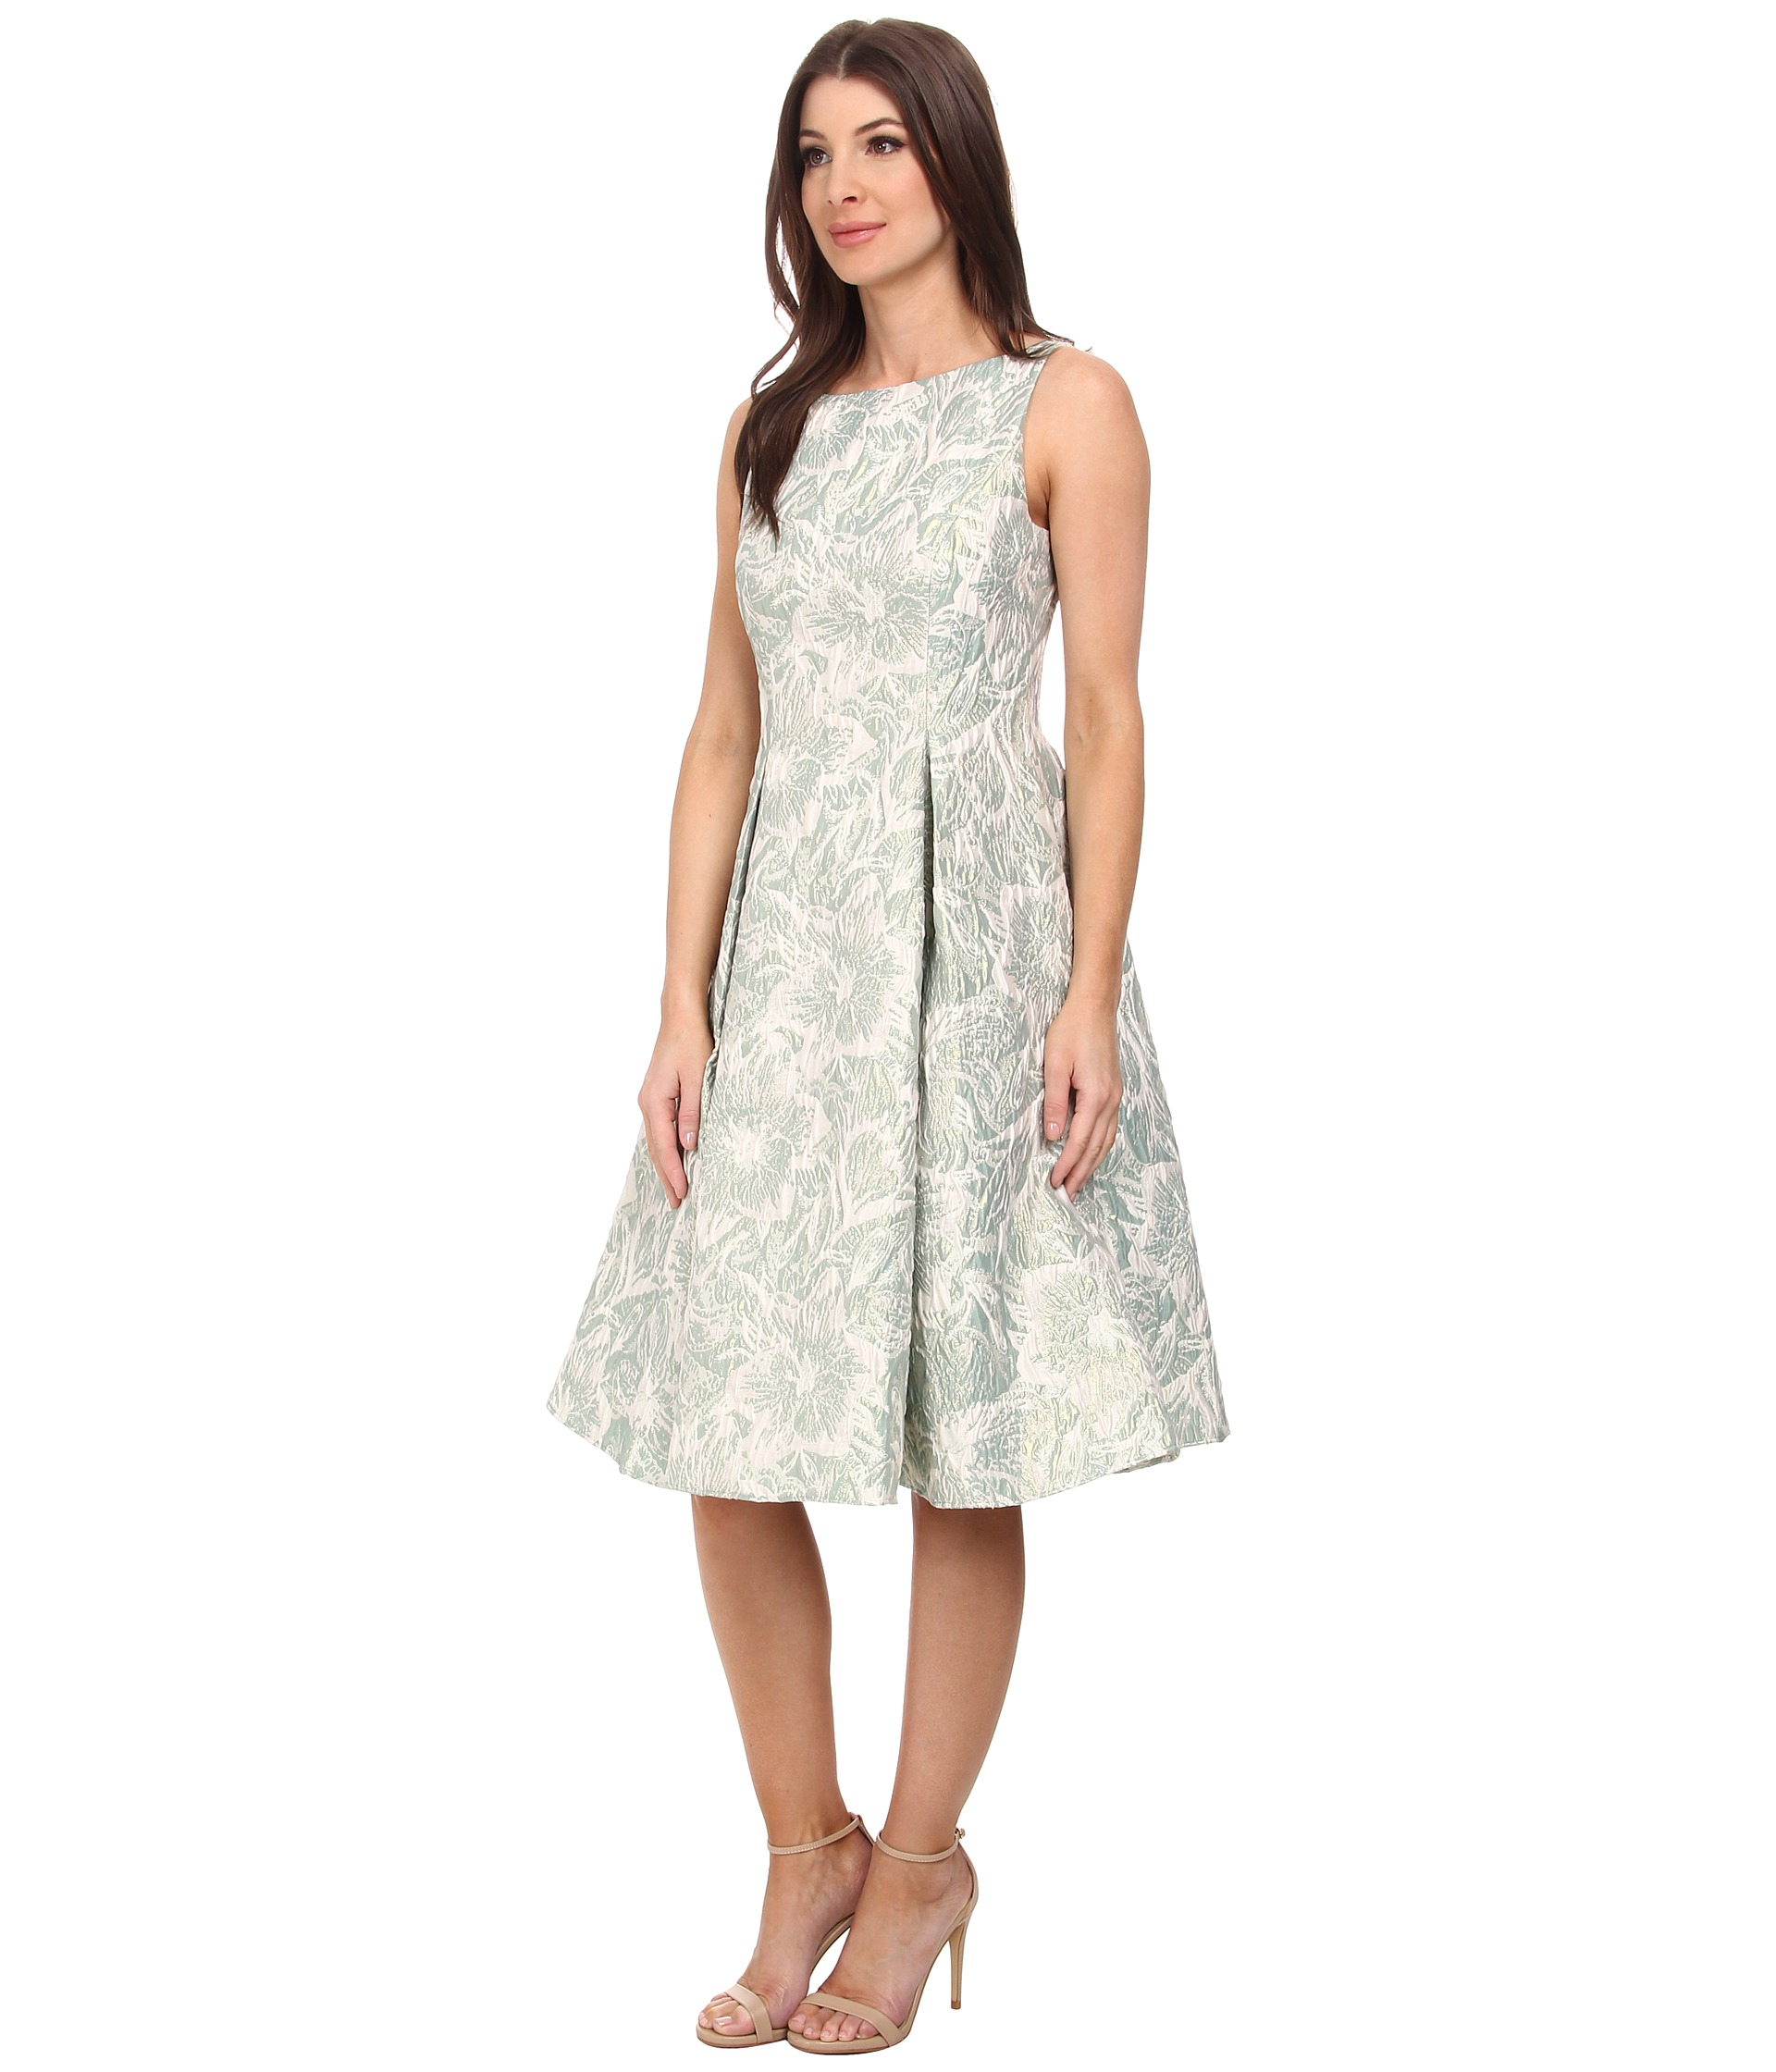 Adrianna Papell Sleeveless Floral Metallic Jacquard Party